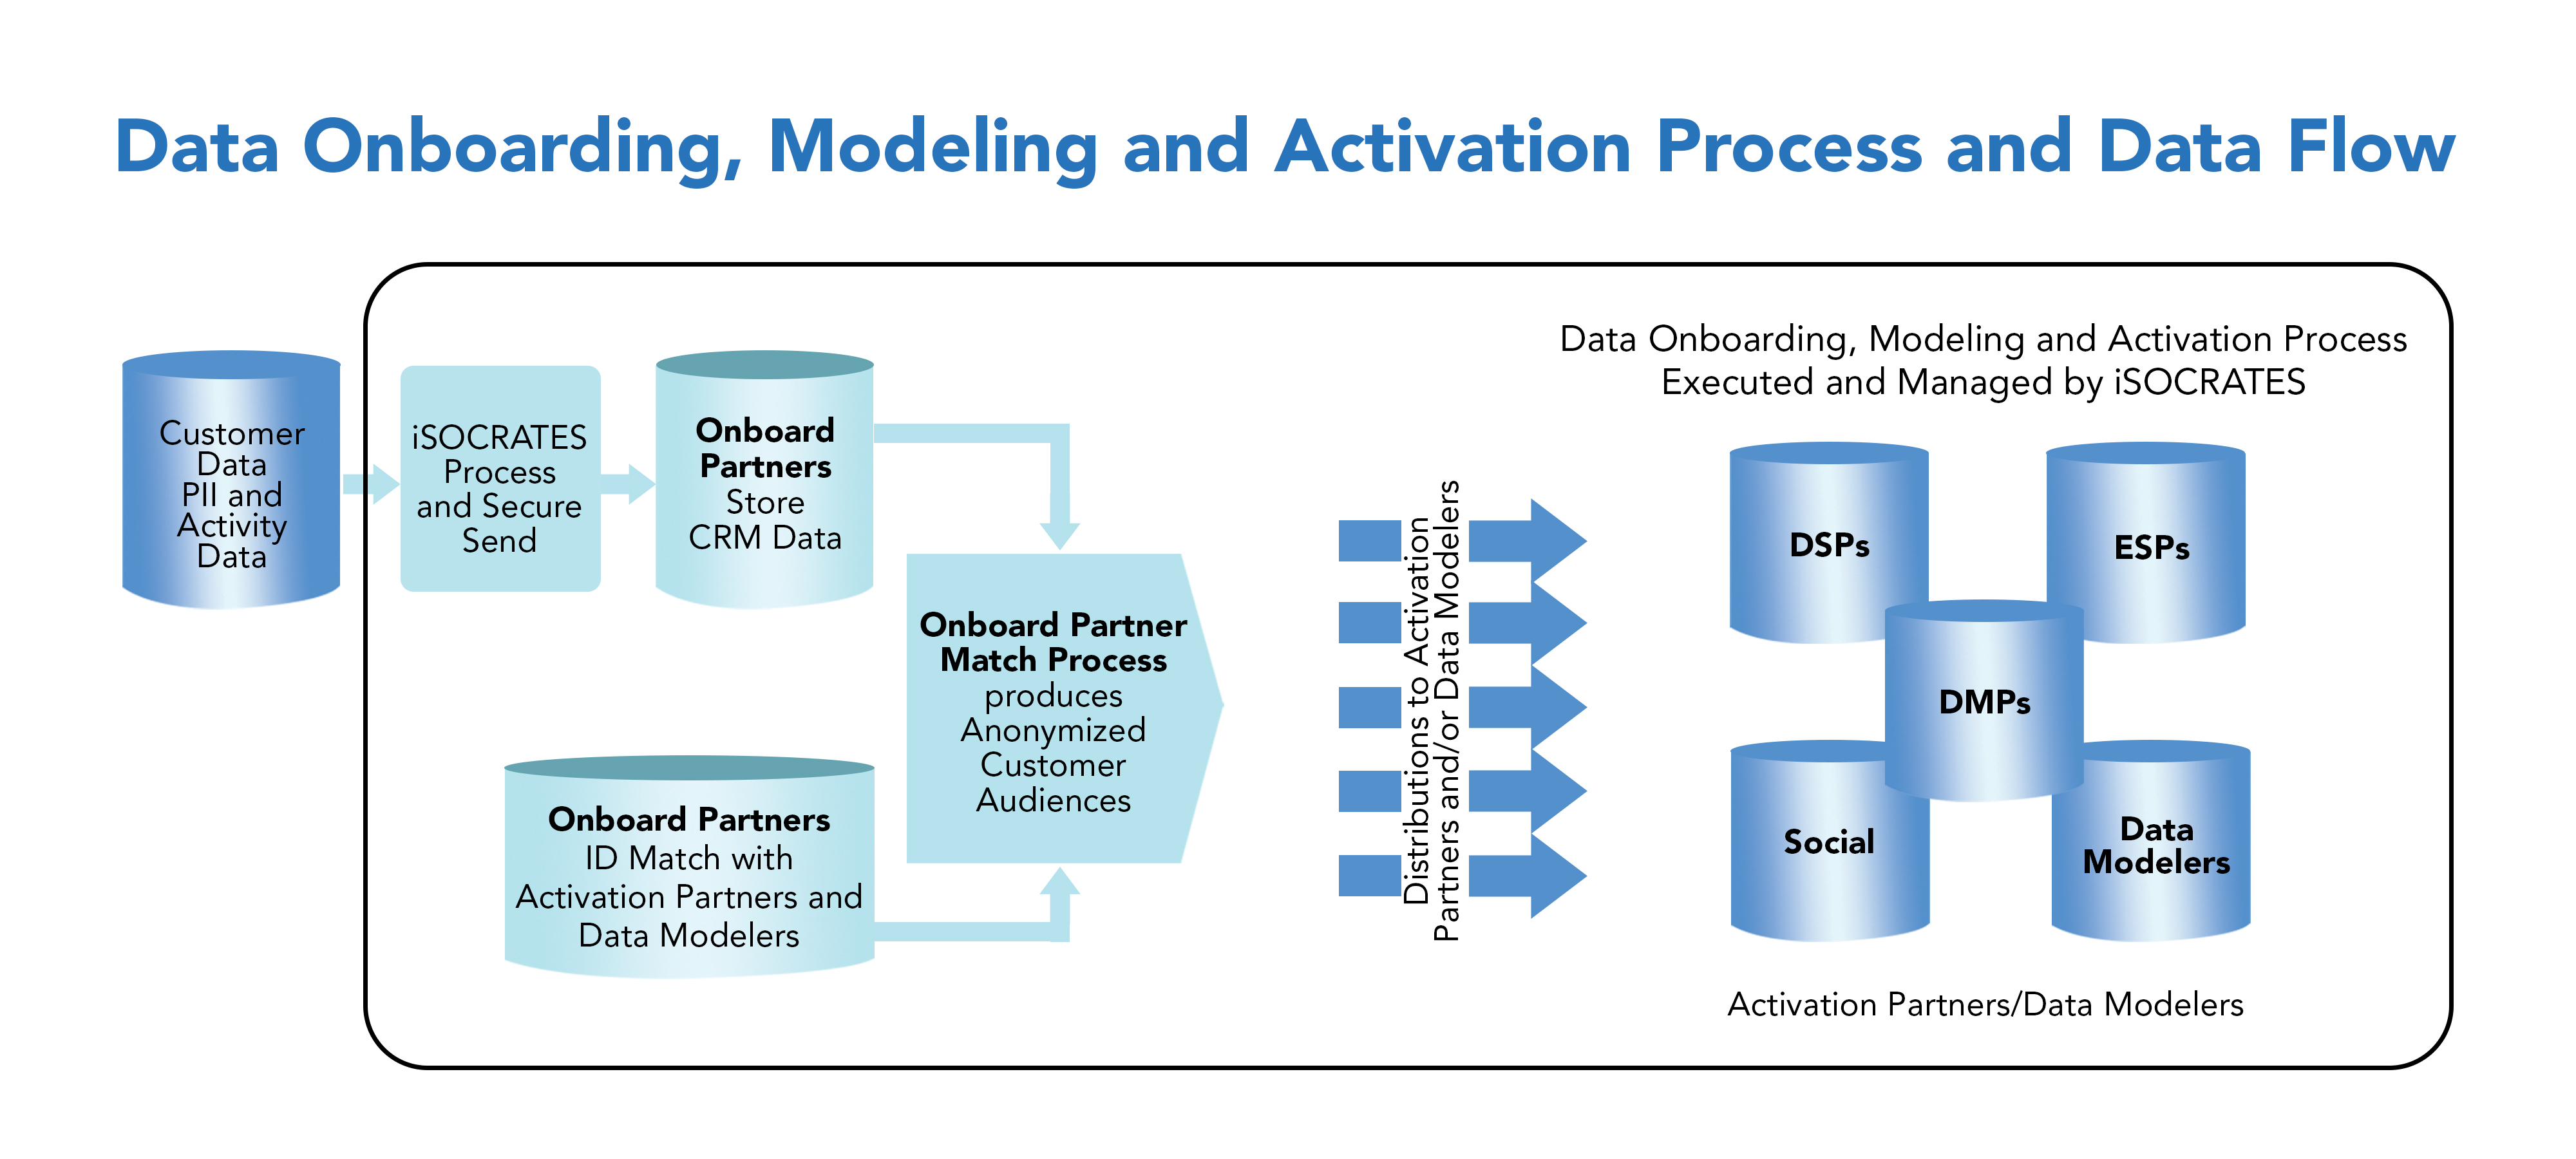 Data Onboarding, Modeling and Activation Process and Data Flow